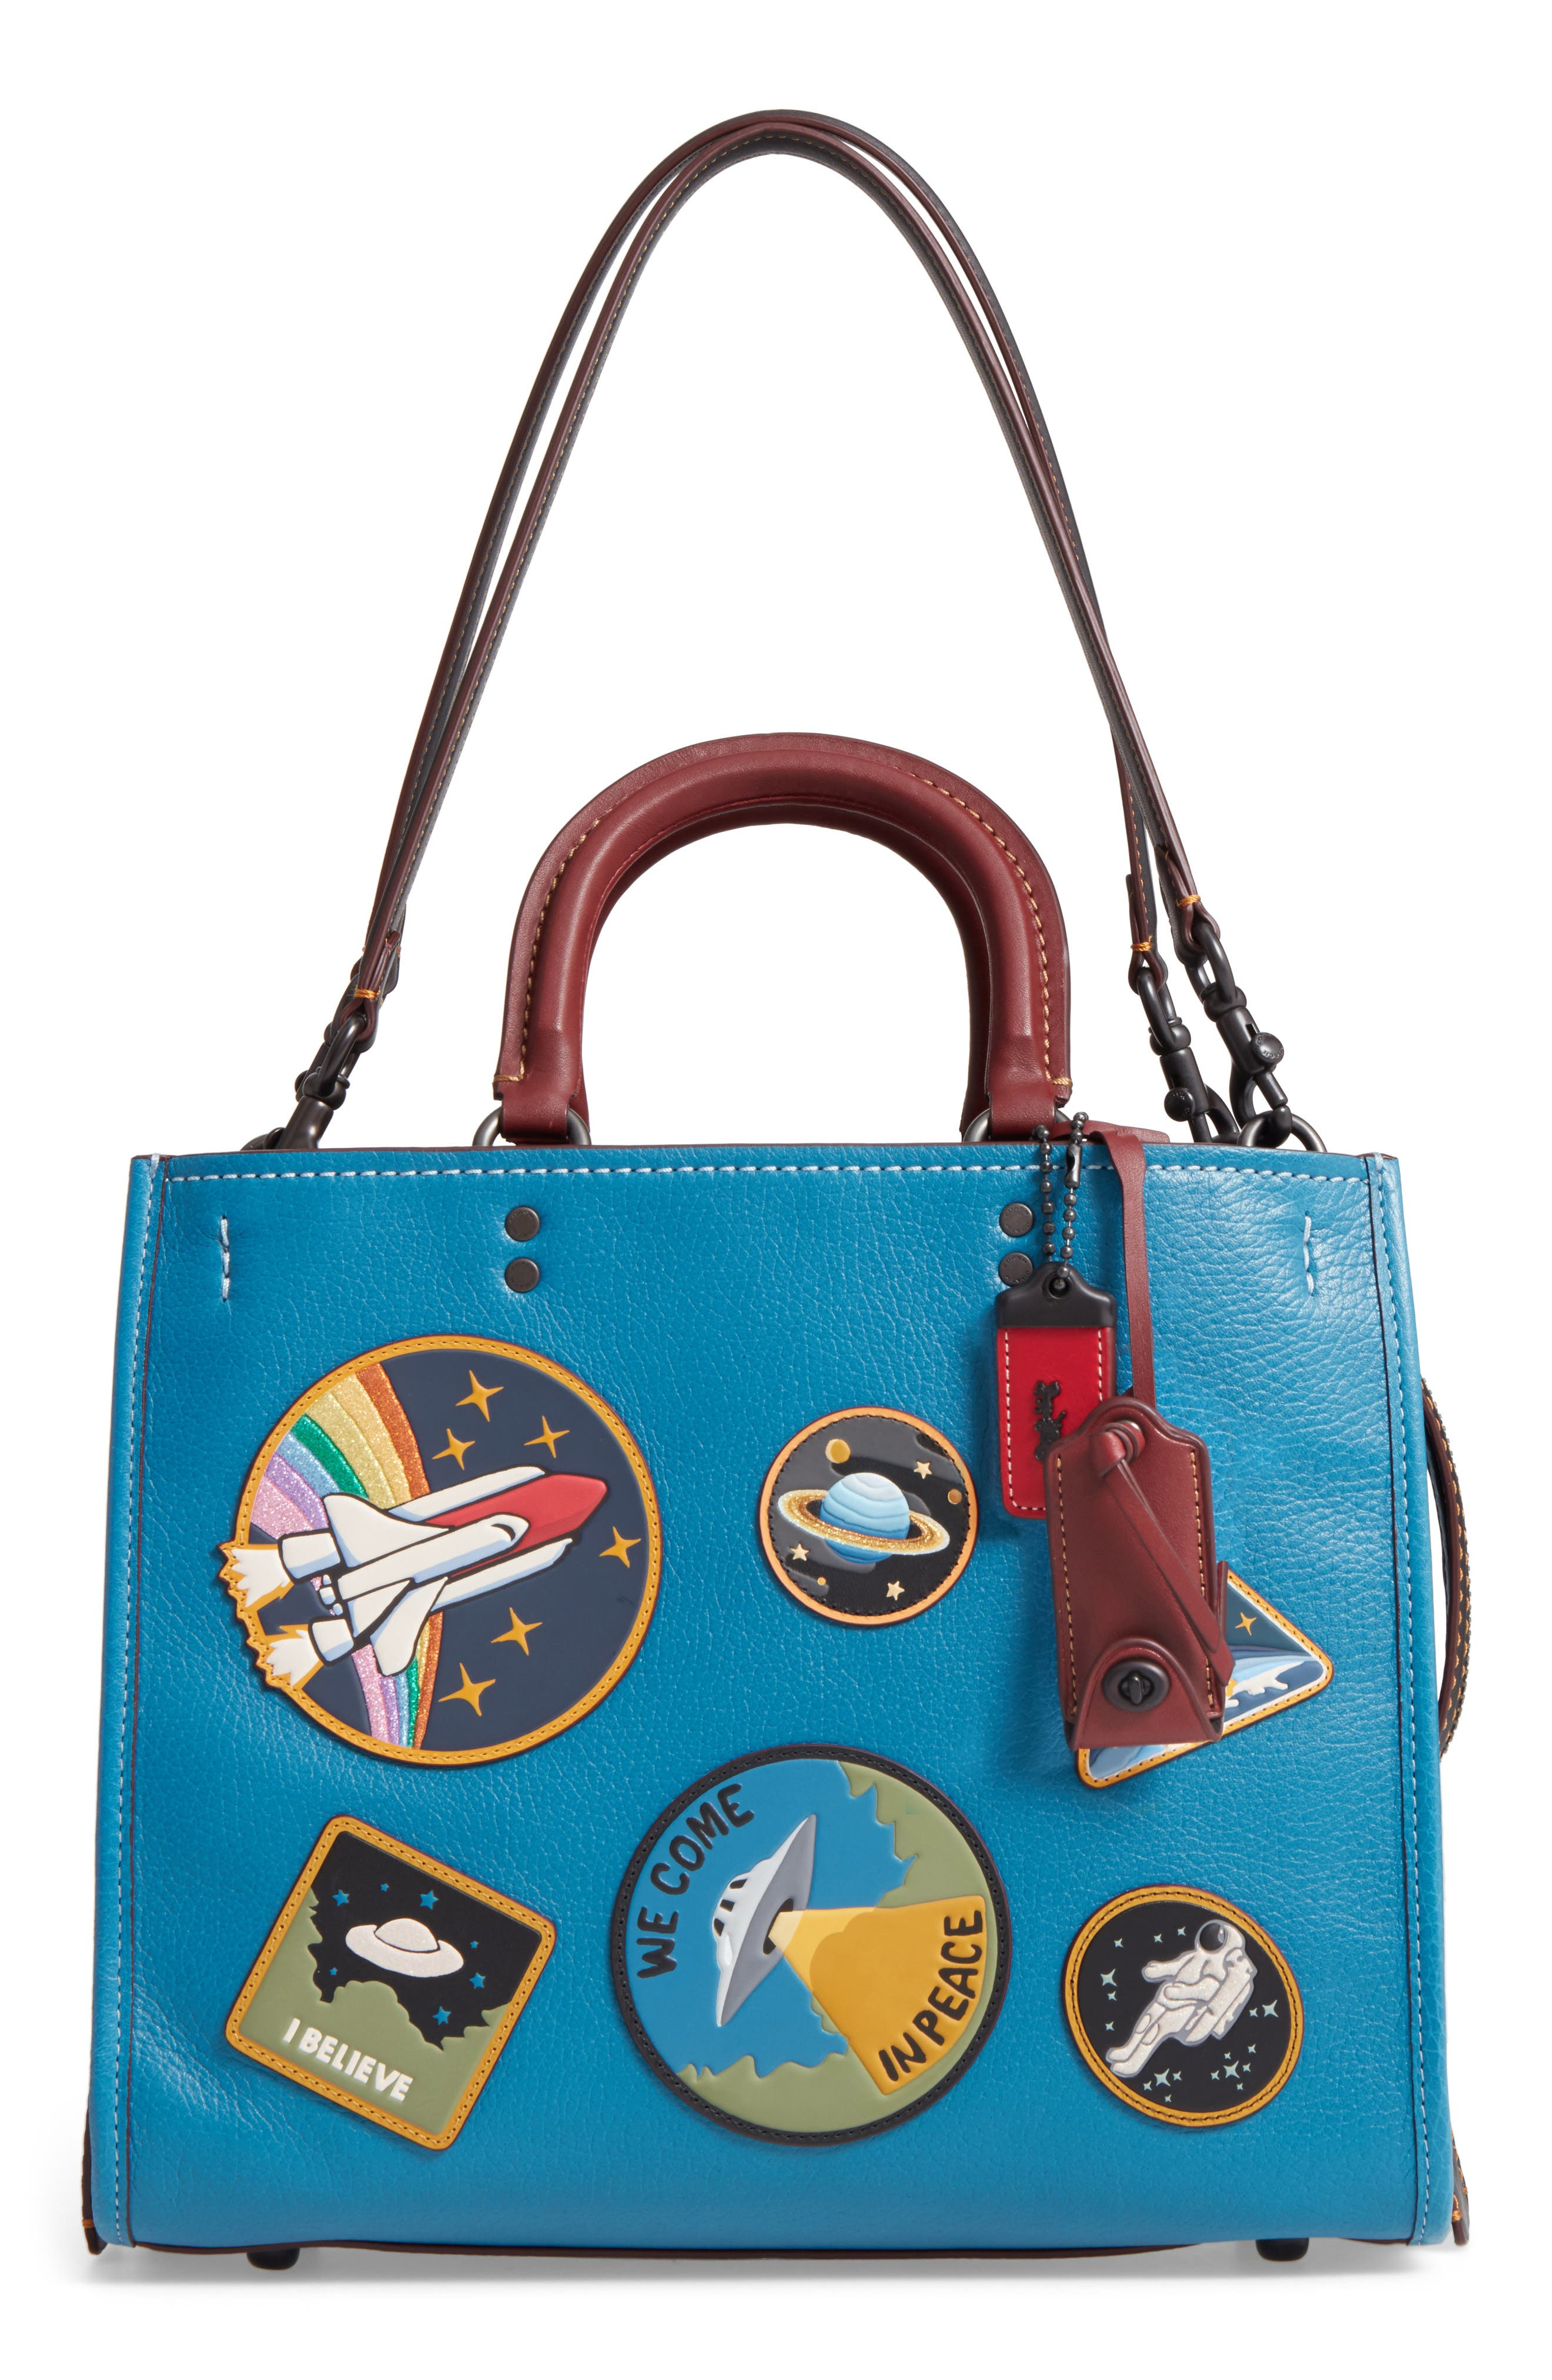 COACH 1941 Space Patches Rogue Leather